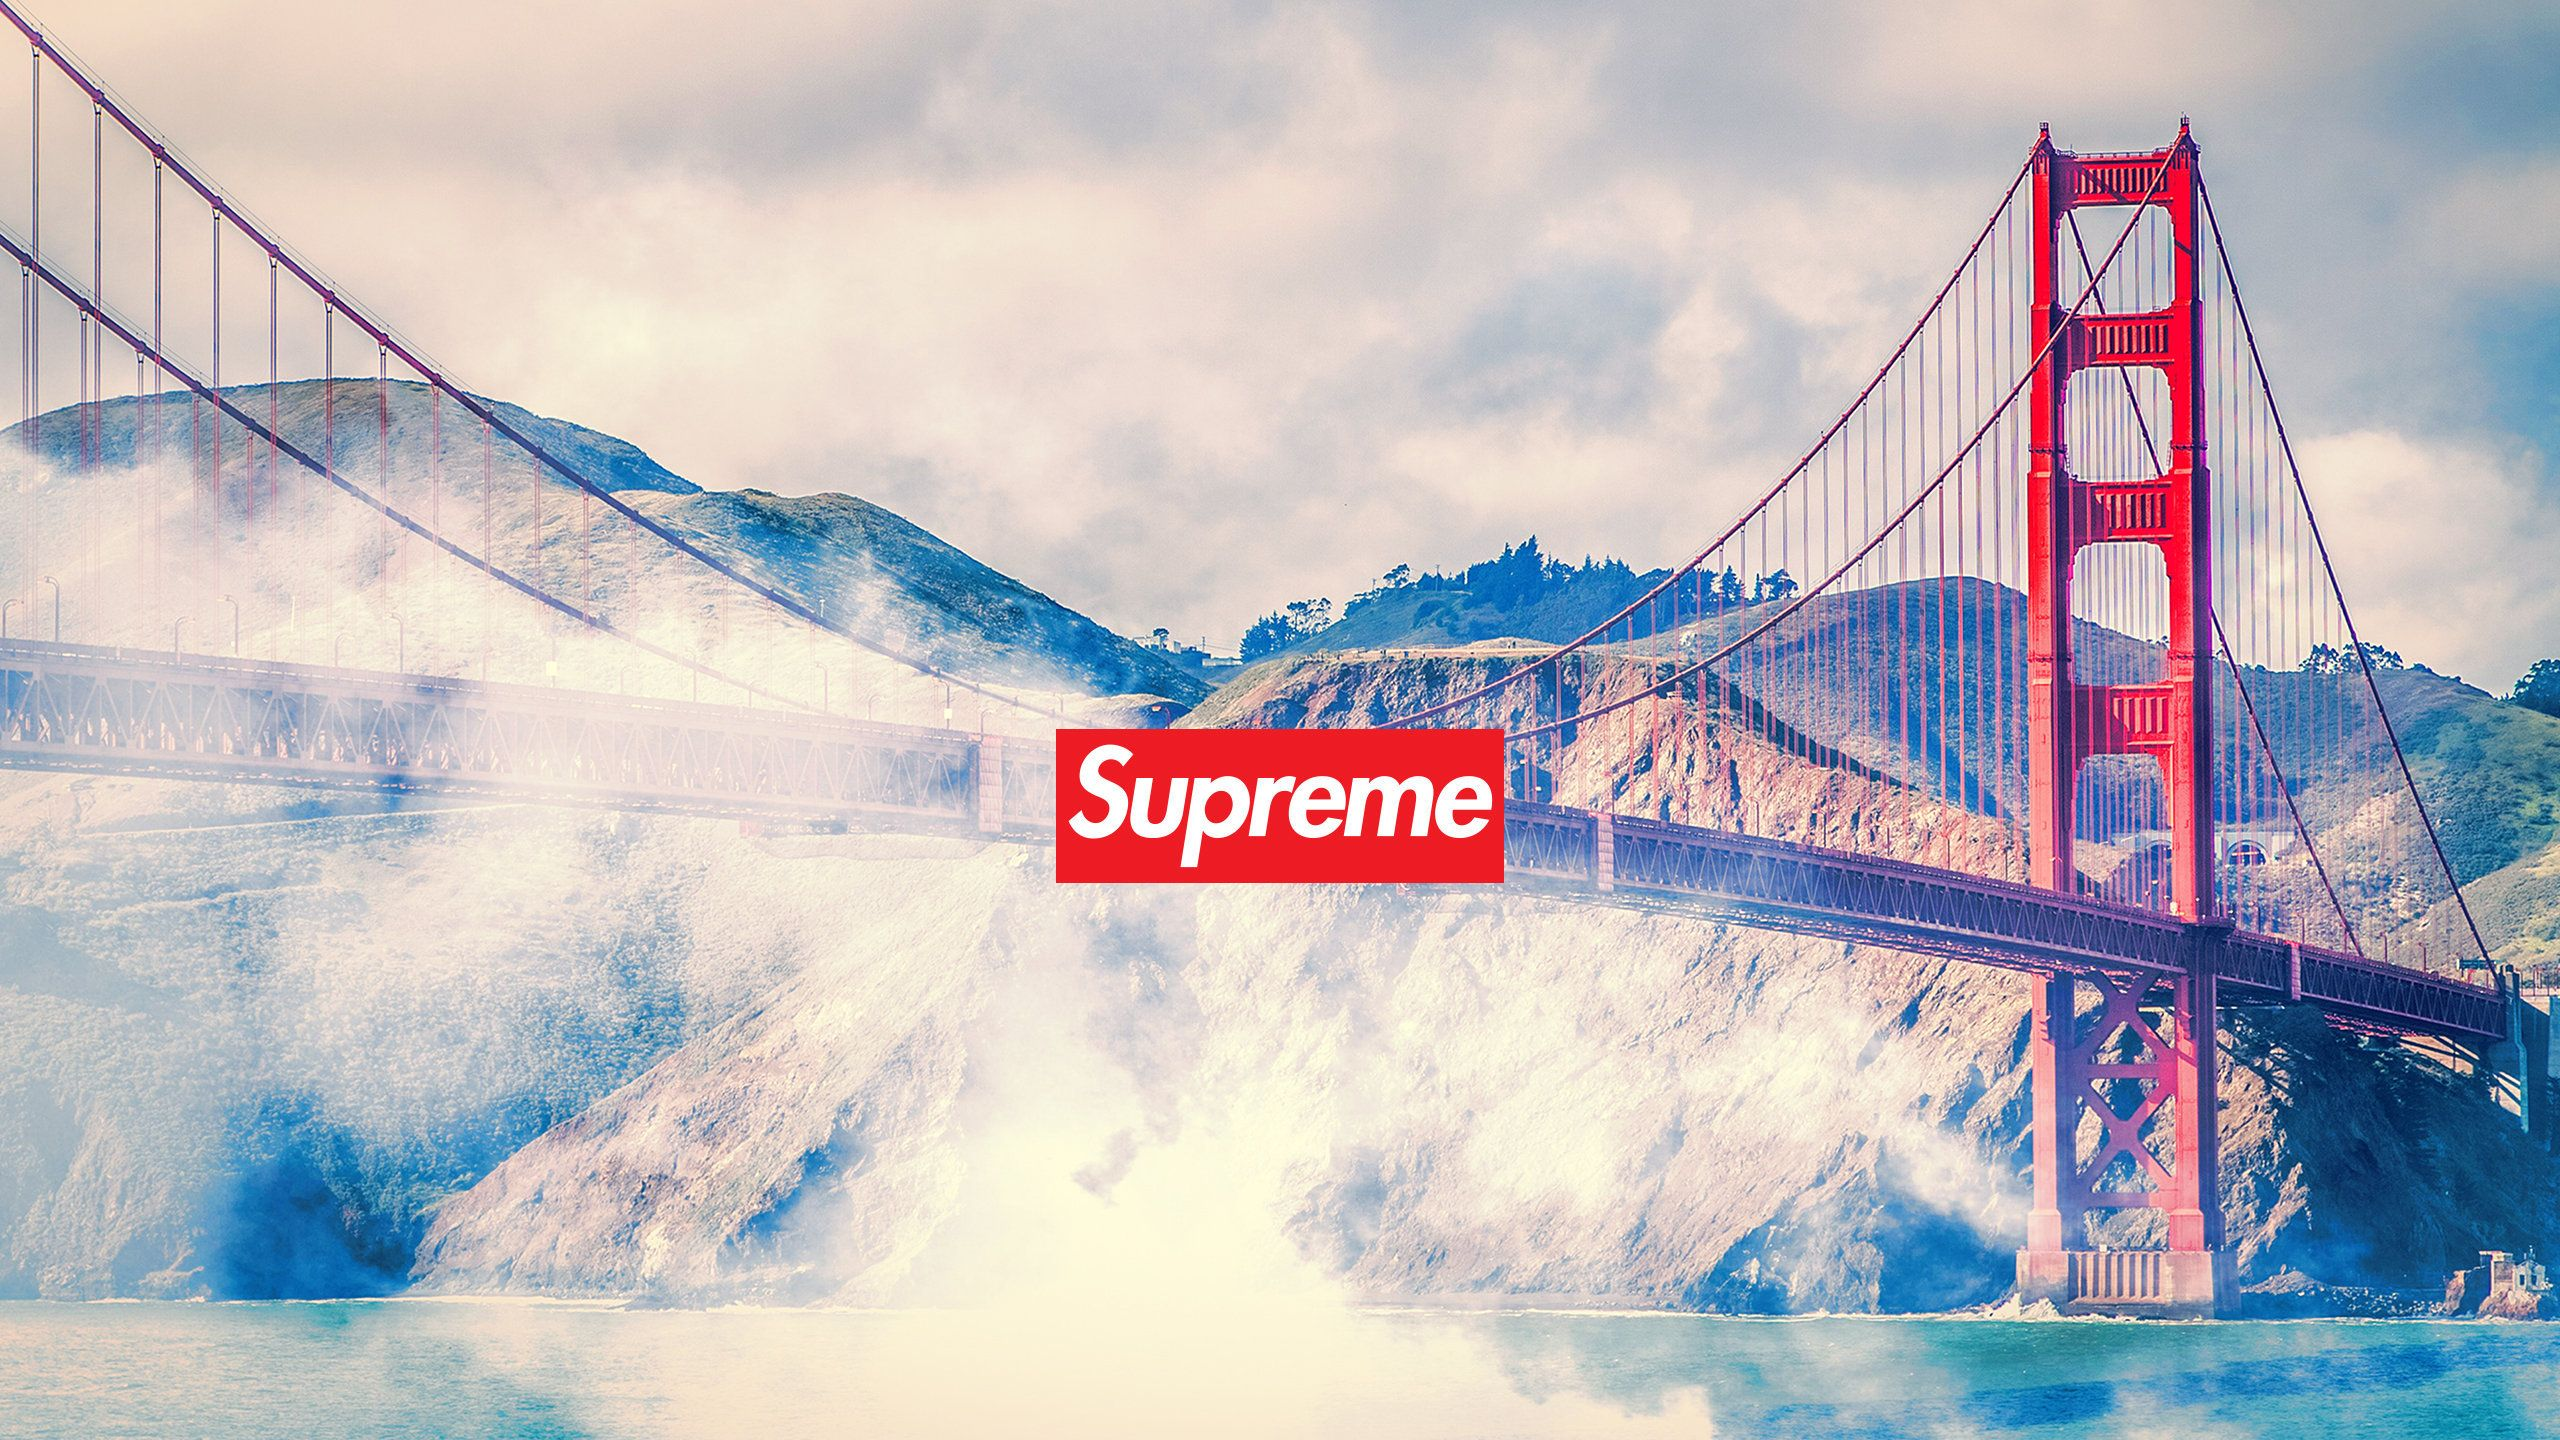 best images about Supreme Supreme wallpaper stuff 2560x1440